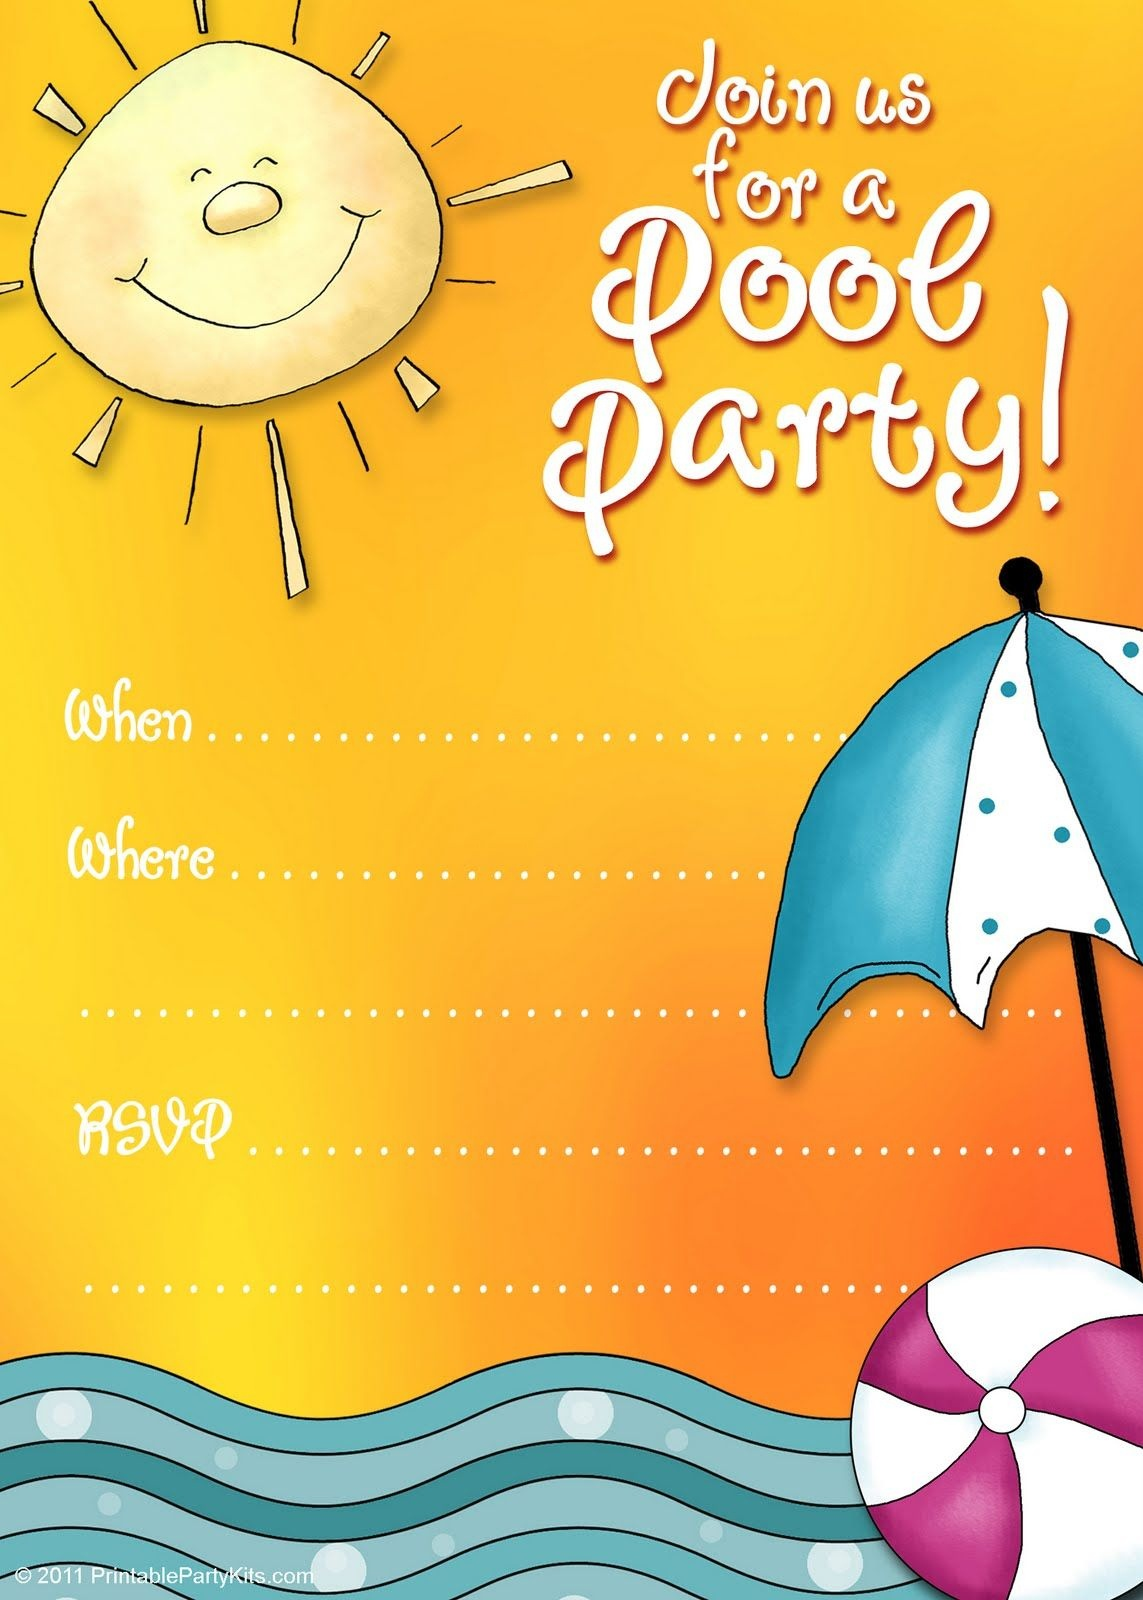 Free Printable Party Invitations: Summer Pool Party Invites   Adhd - Free Printable Pool Party Invitation Cards